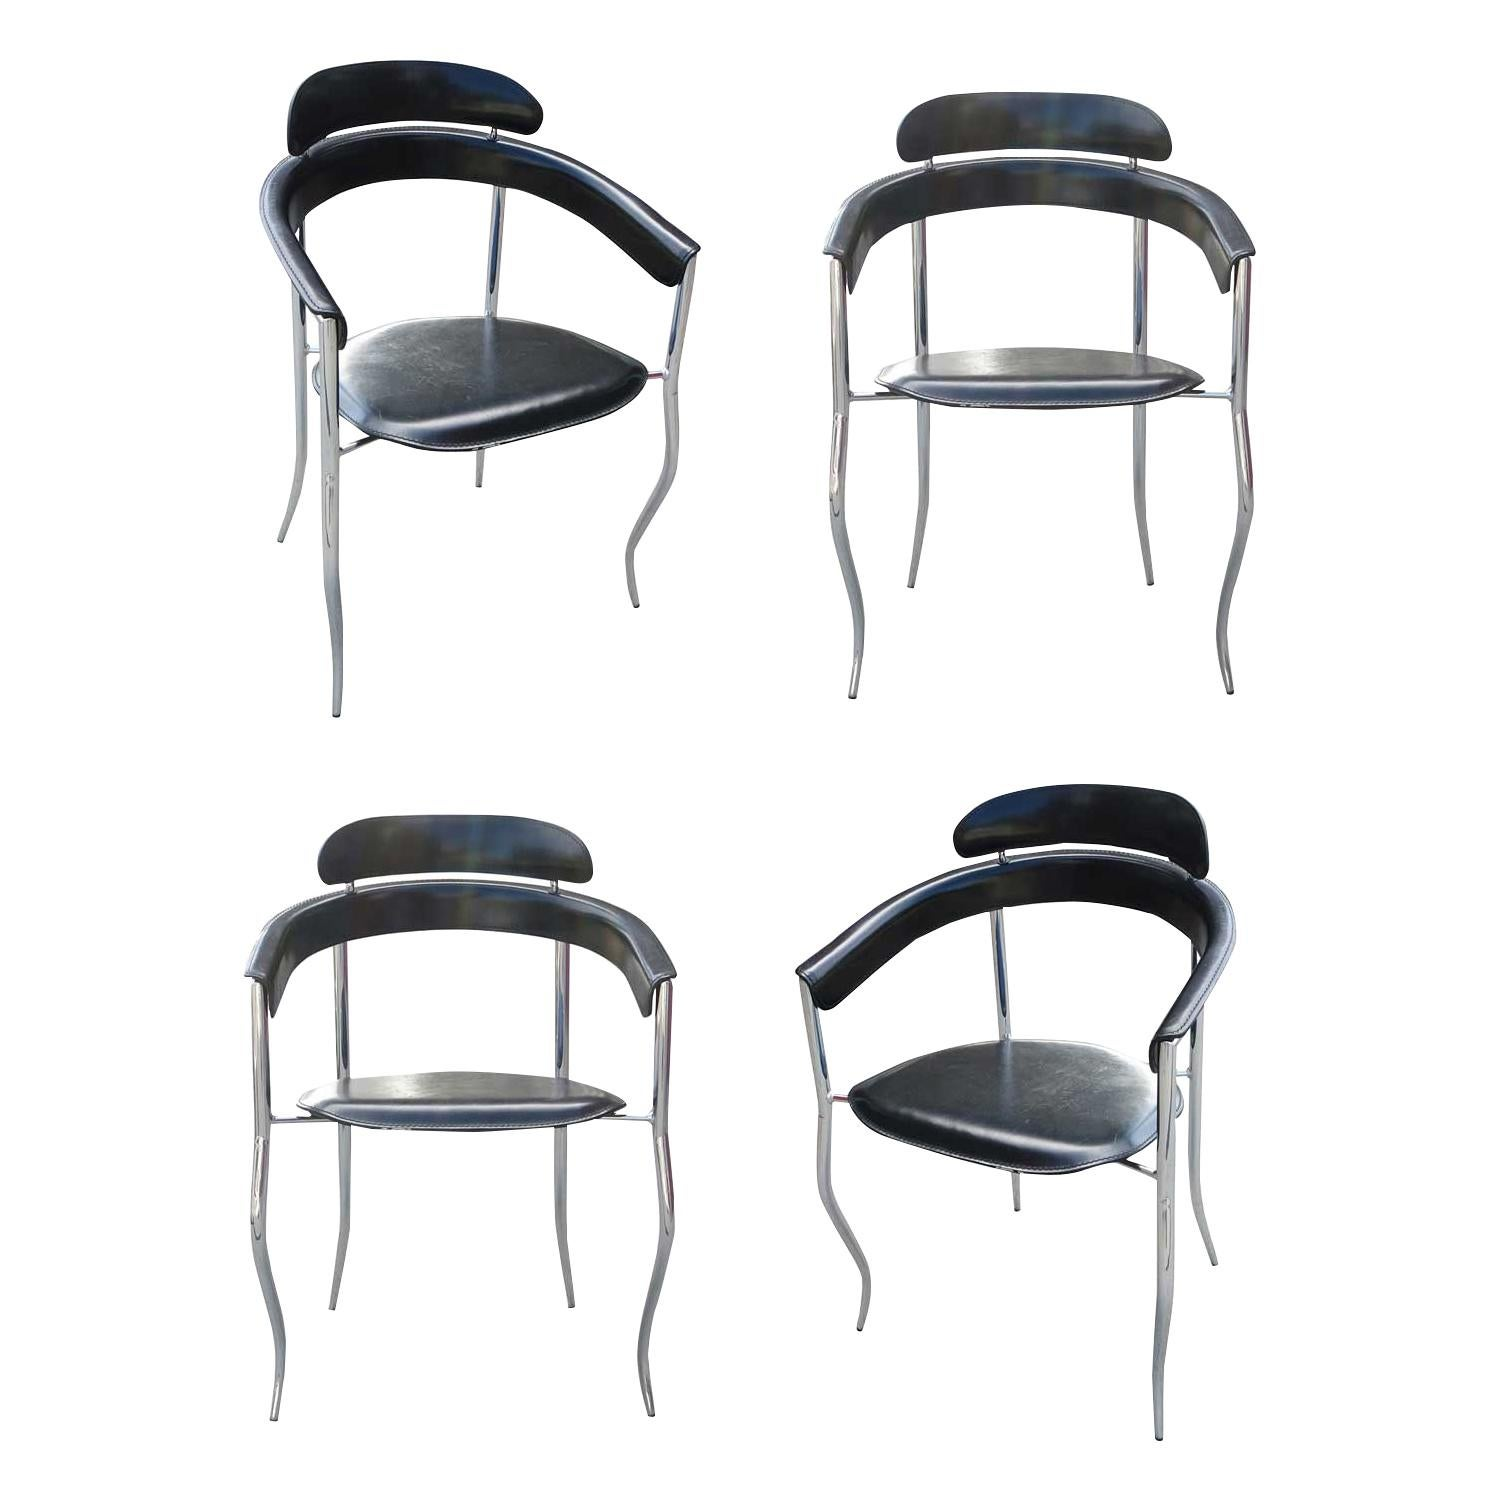 Set of Four Stiletto Architectural Chairs by Arrben, Italy